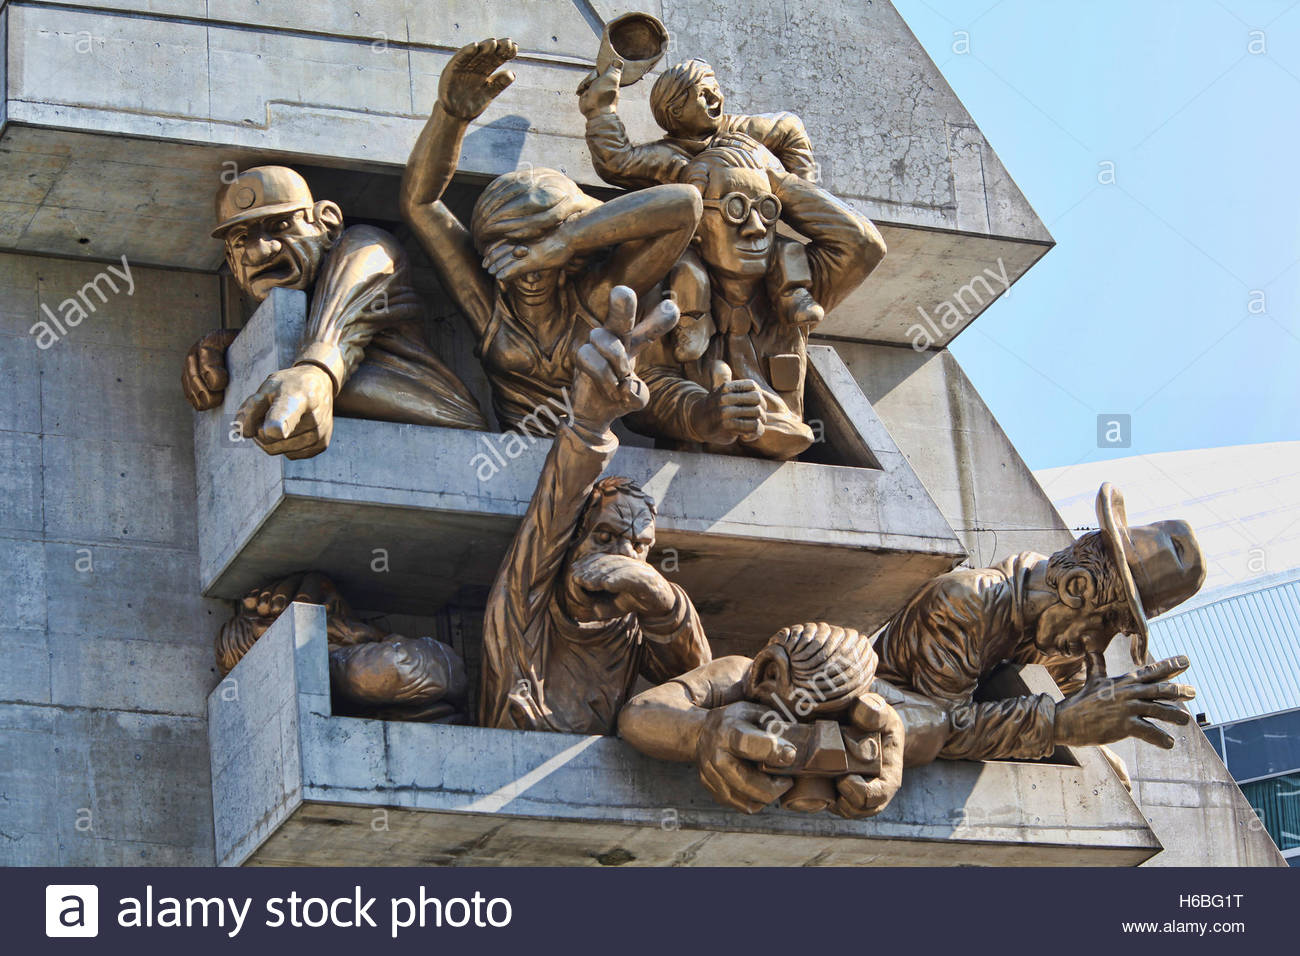 Sculpture of sports fans outside the Rogers Centre stadium in Toronto, Ontario, Canada. - Stock Image